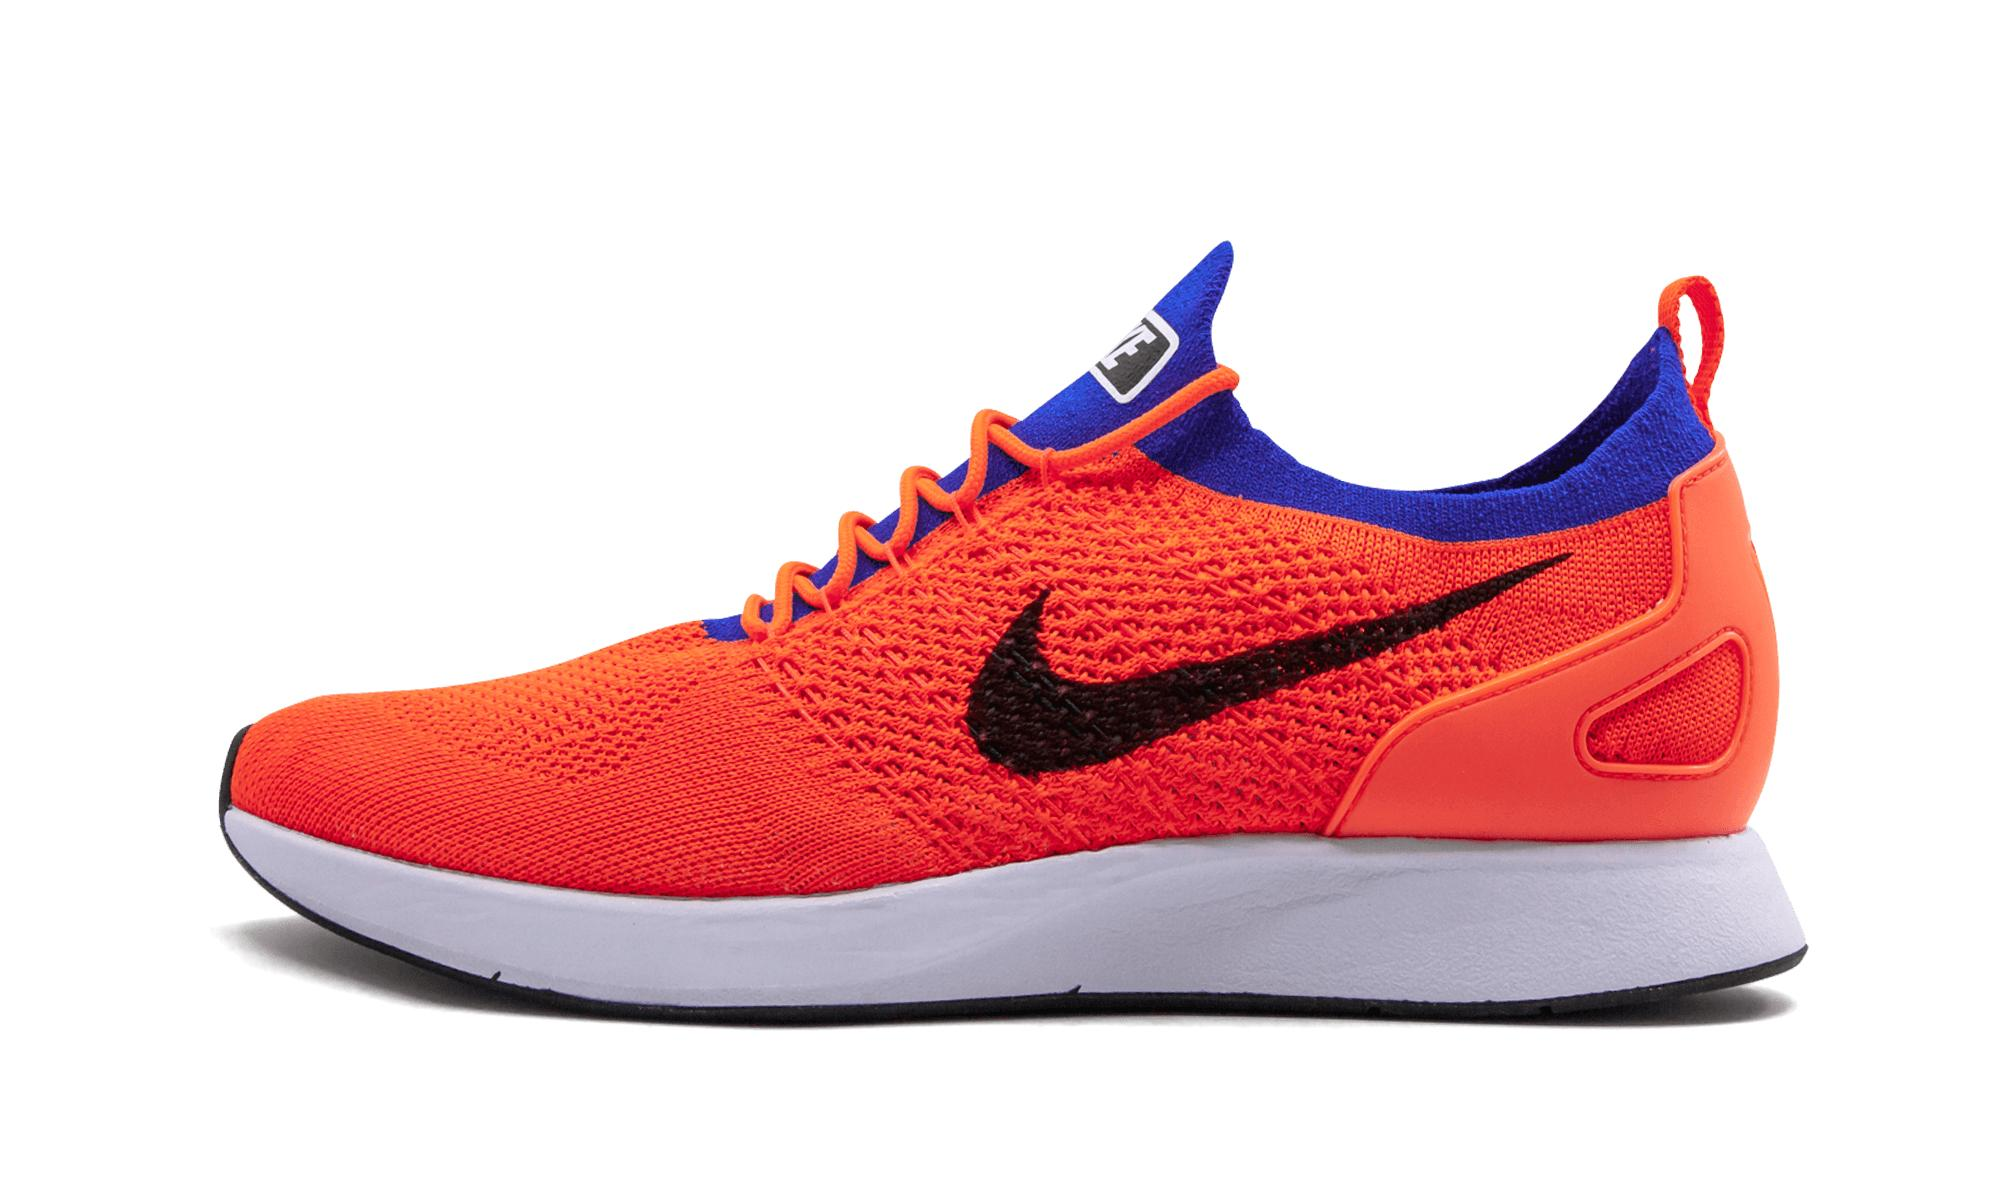 669a917421ee Lyst - Nike Air Zoom Mariah Flyknit Racer in Blue for Men